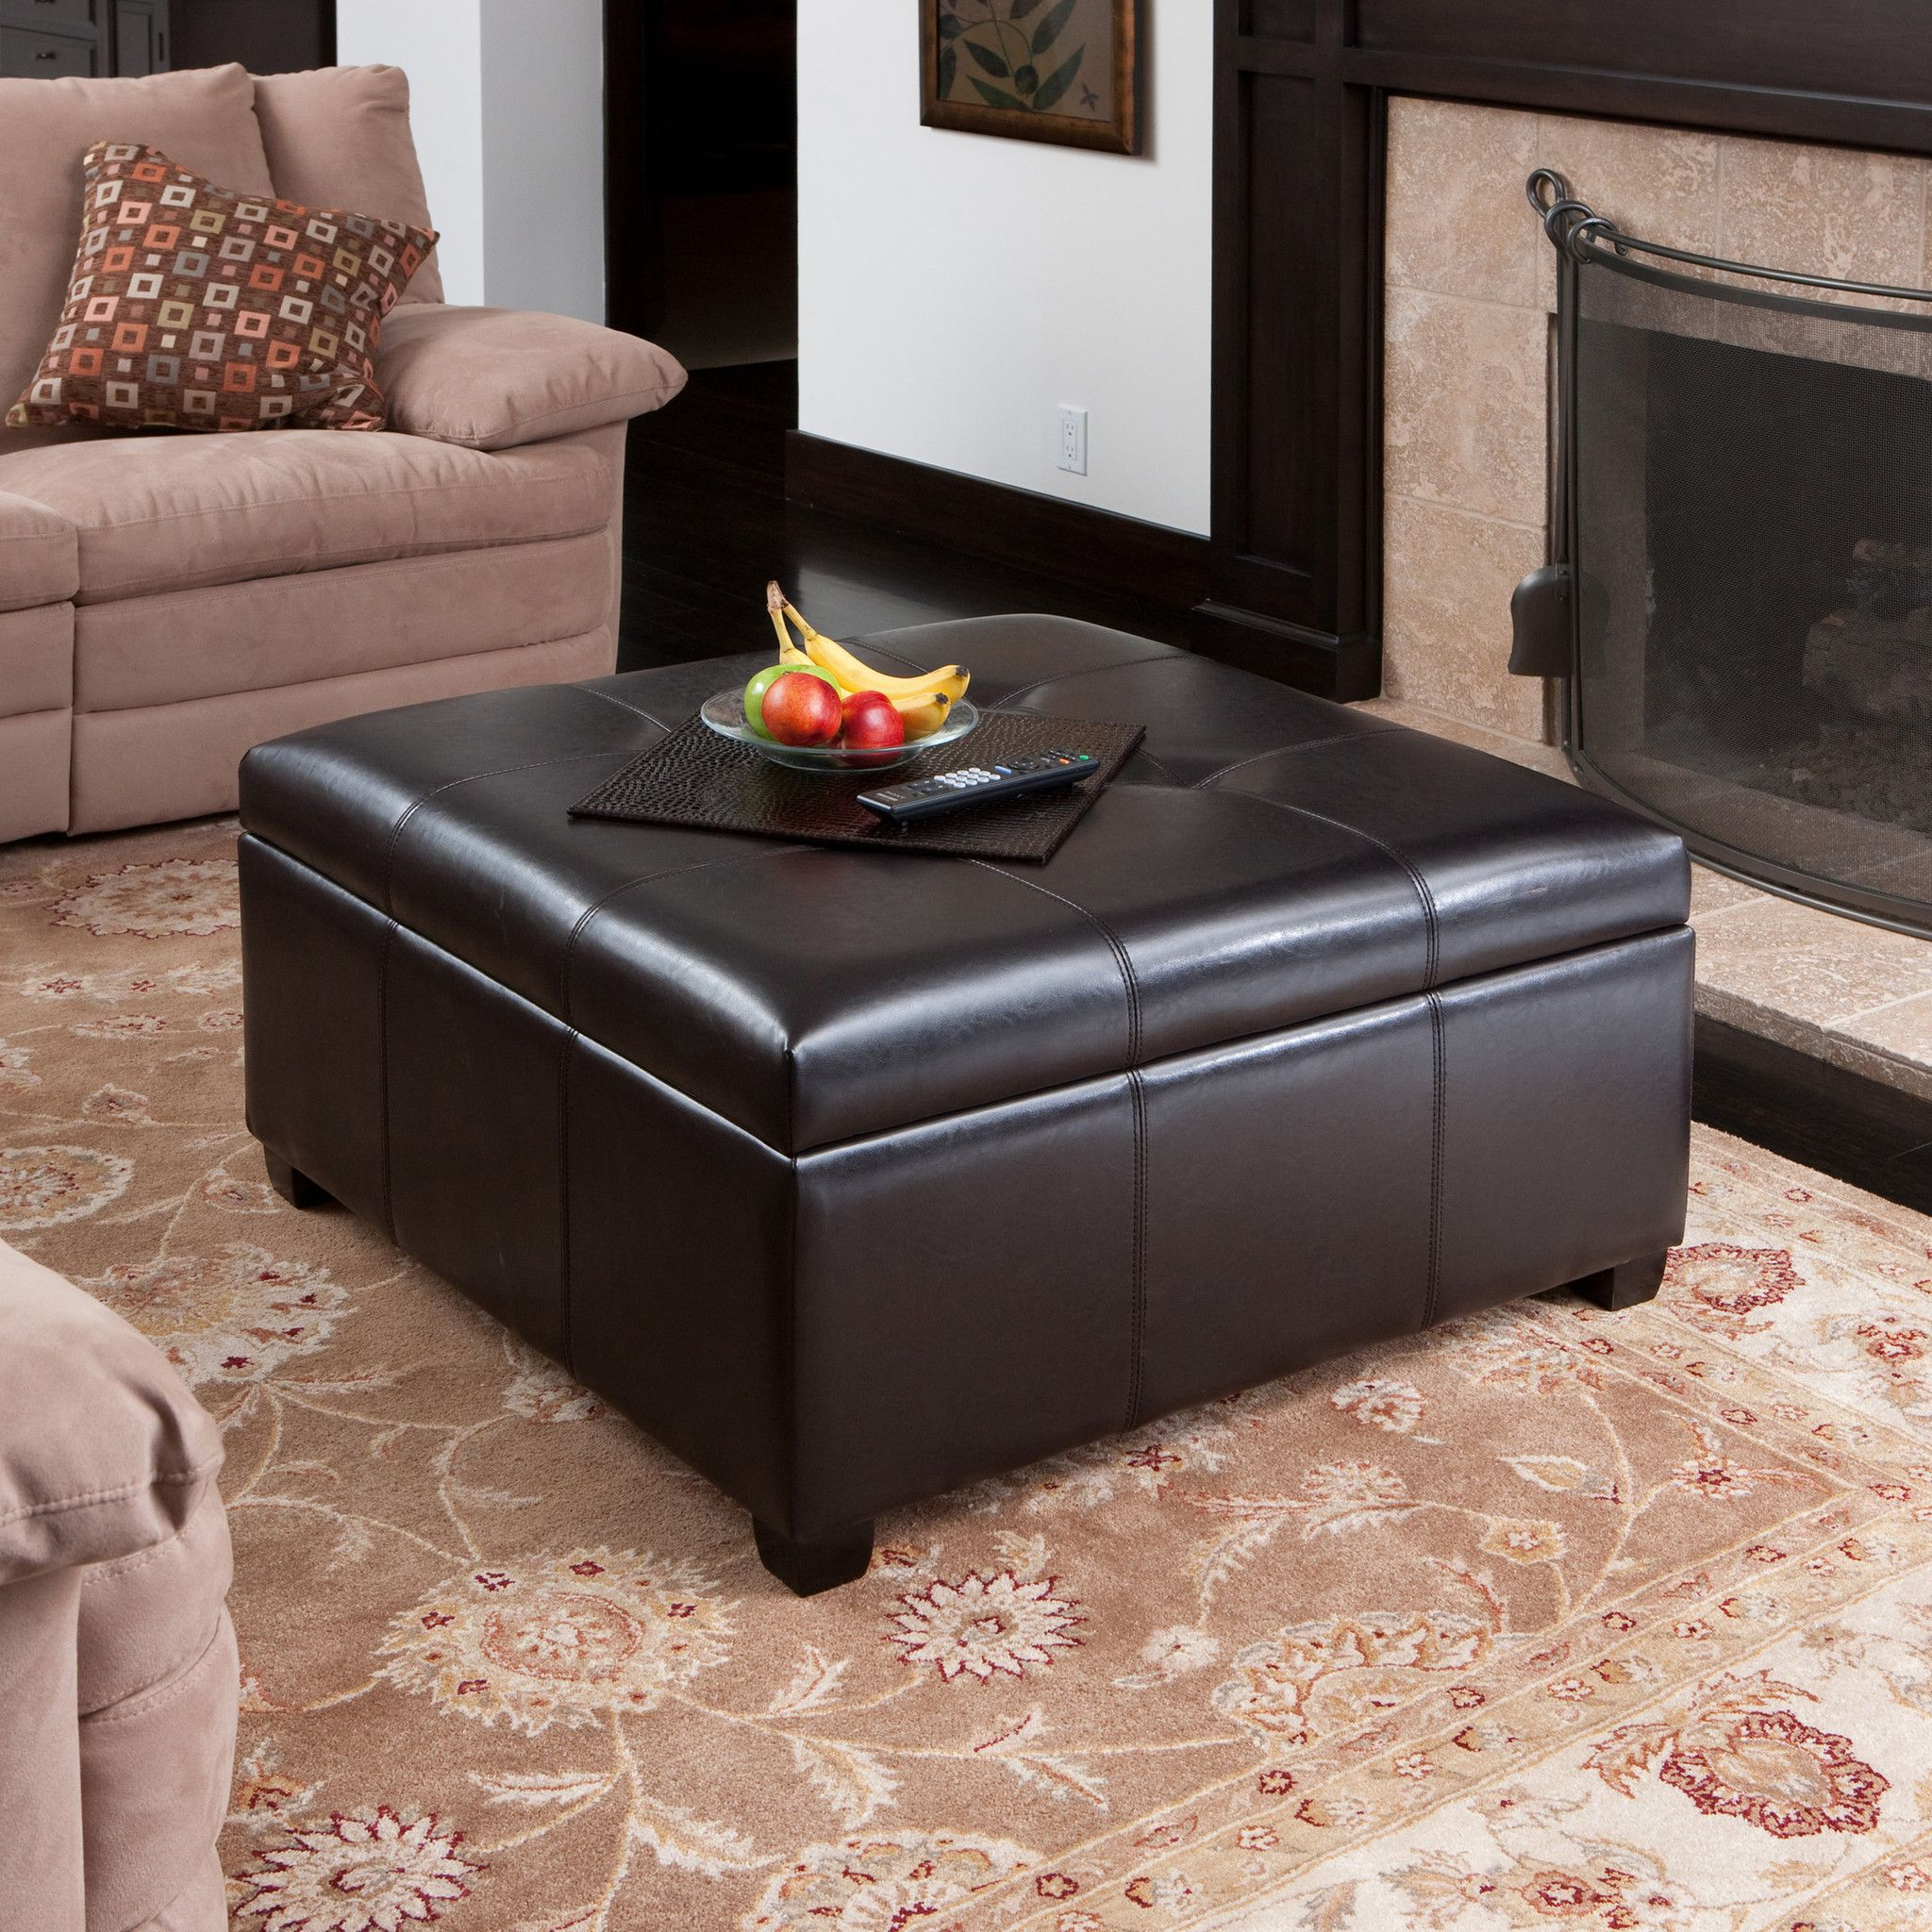 Patsy espresso tufted leather storage ottoman apartment living